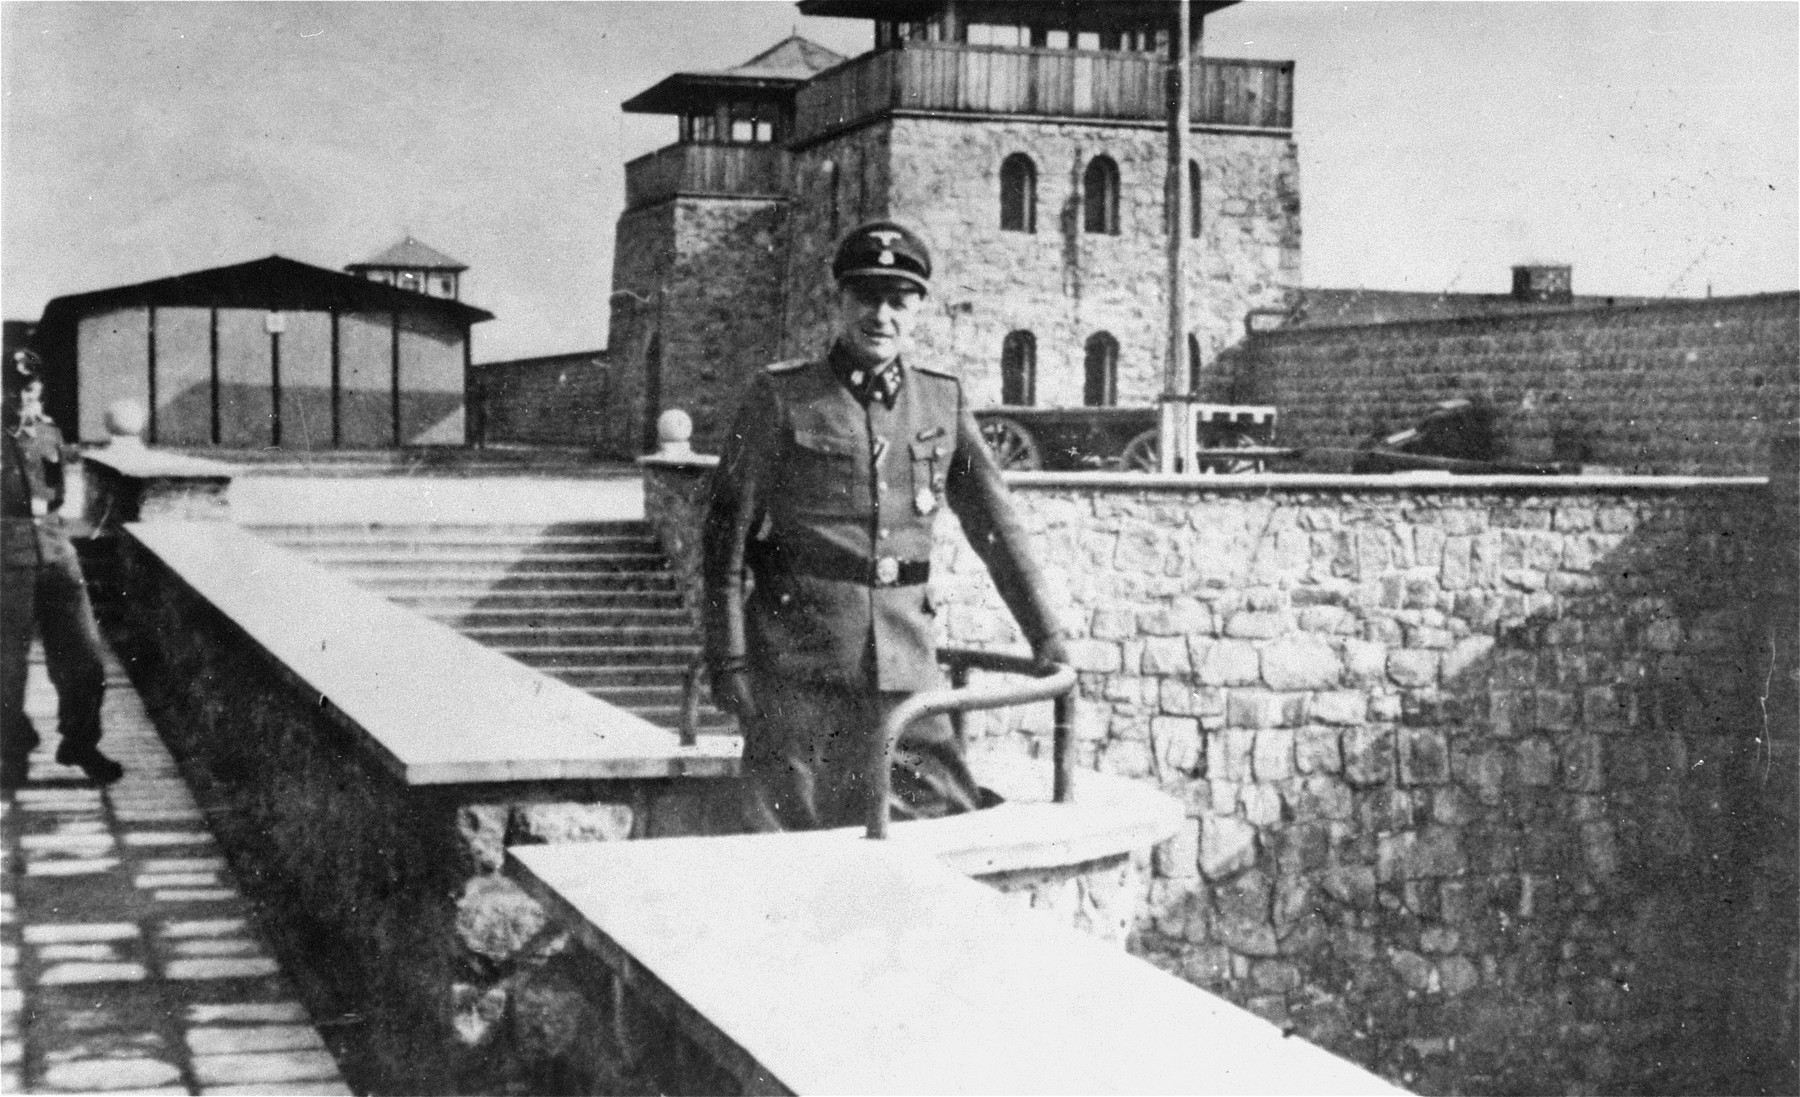 Franz Ziereis poses in front of the commandant's headquarters on the wall overlooking the garage courtyard (Garagenhofmauer) in Mauthausen.